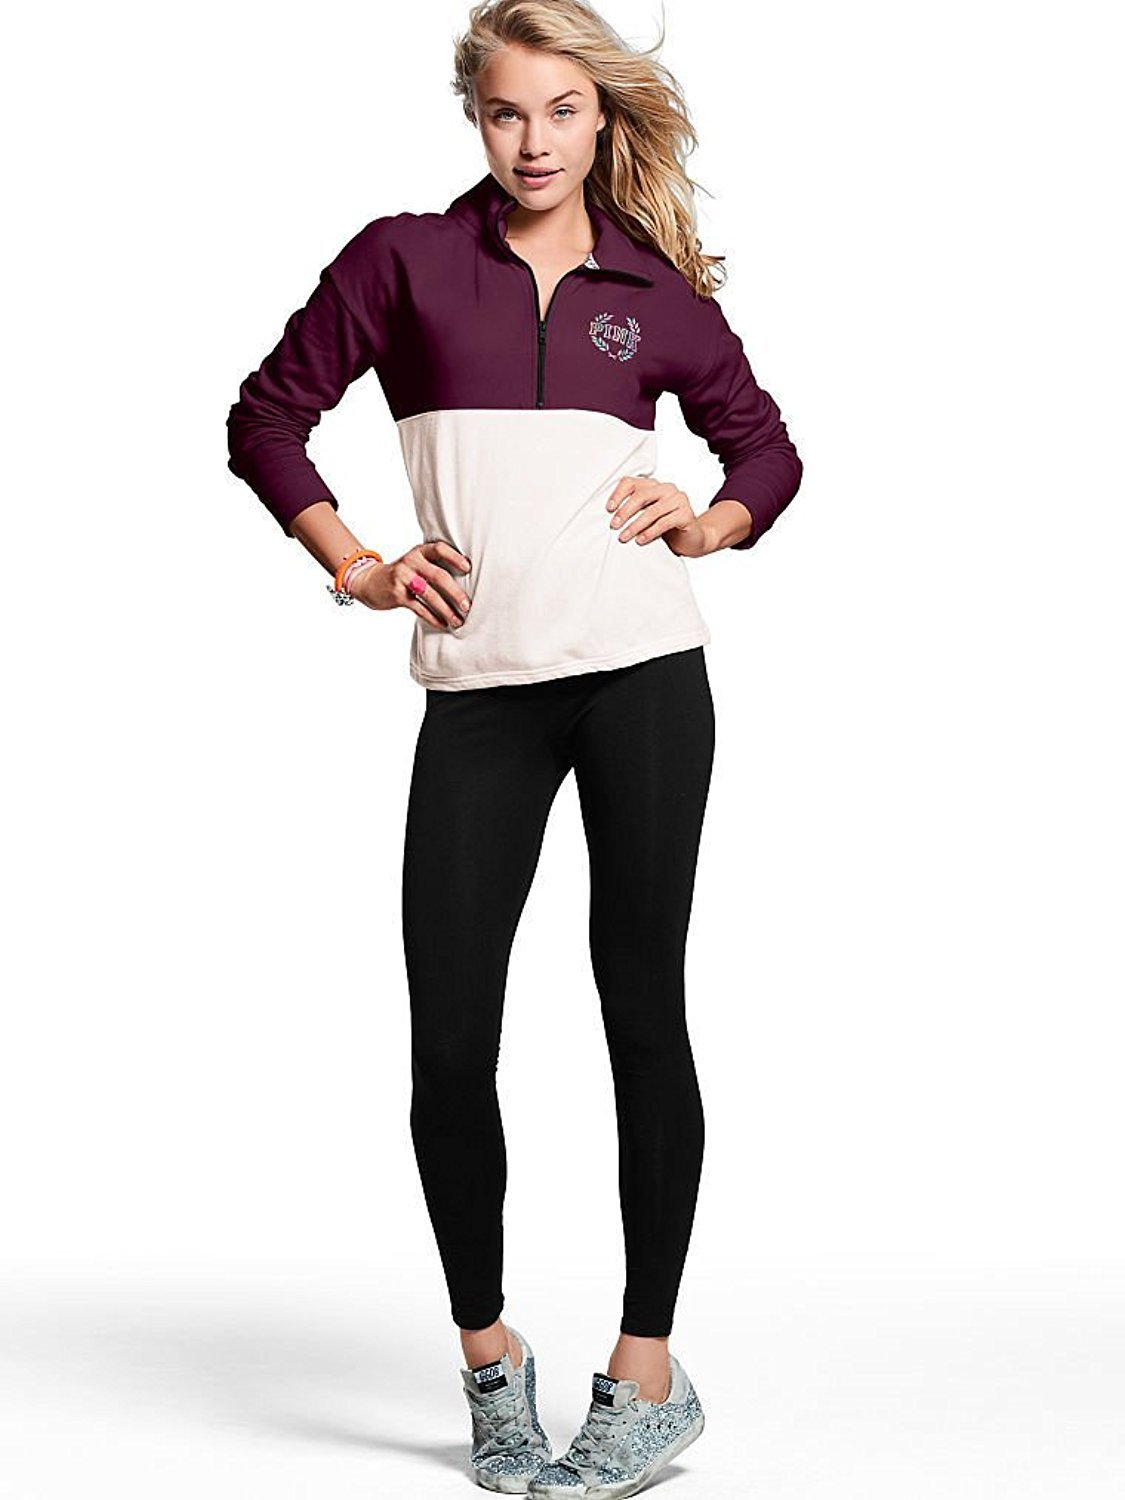 Victoria's Secret, Pink High/Low Half Zip & Campus Legging Gift Set Bling Black Orchid (Small)